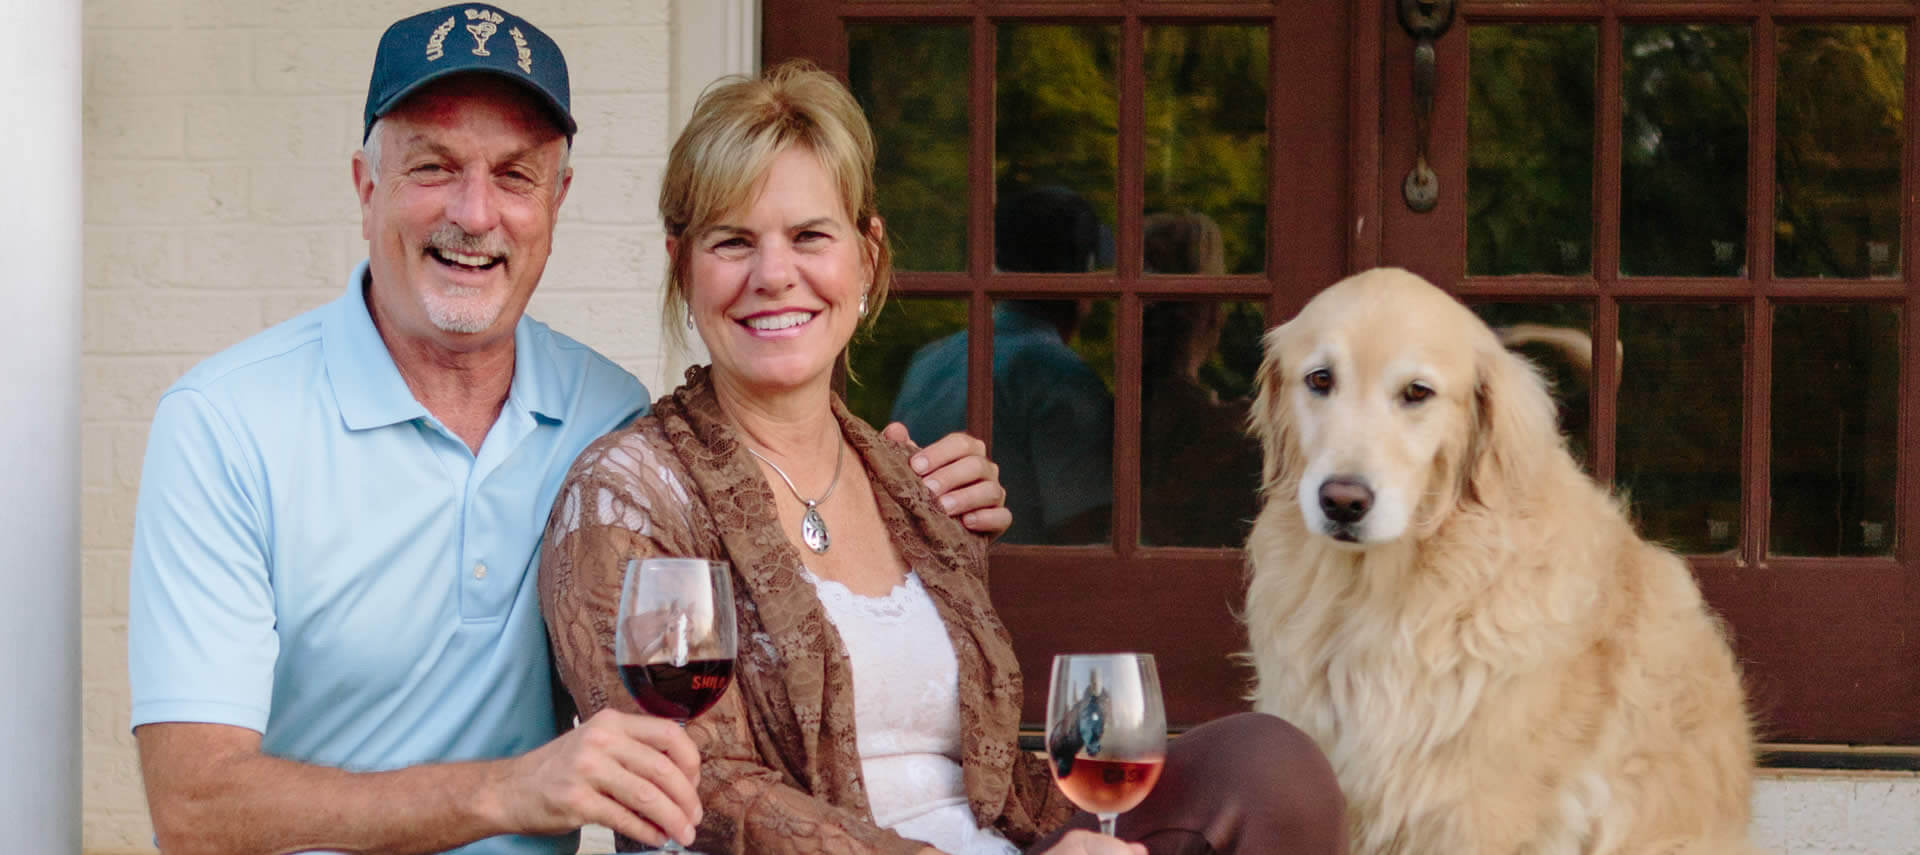 Smiling couple on a porch hold wine glasses next to a golden retreiver.